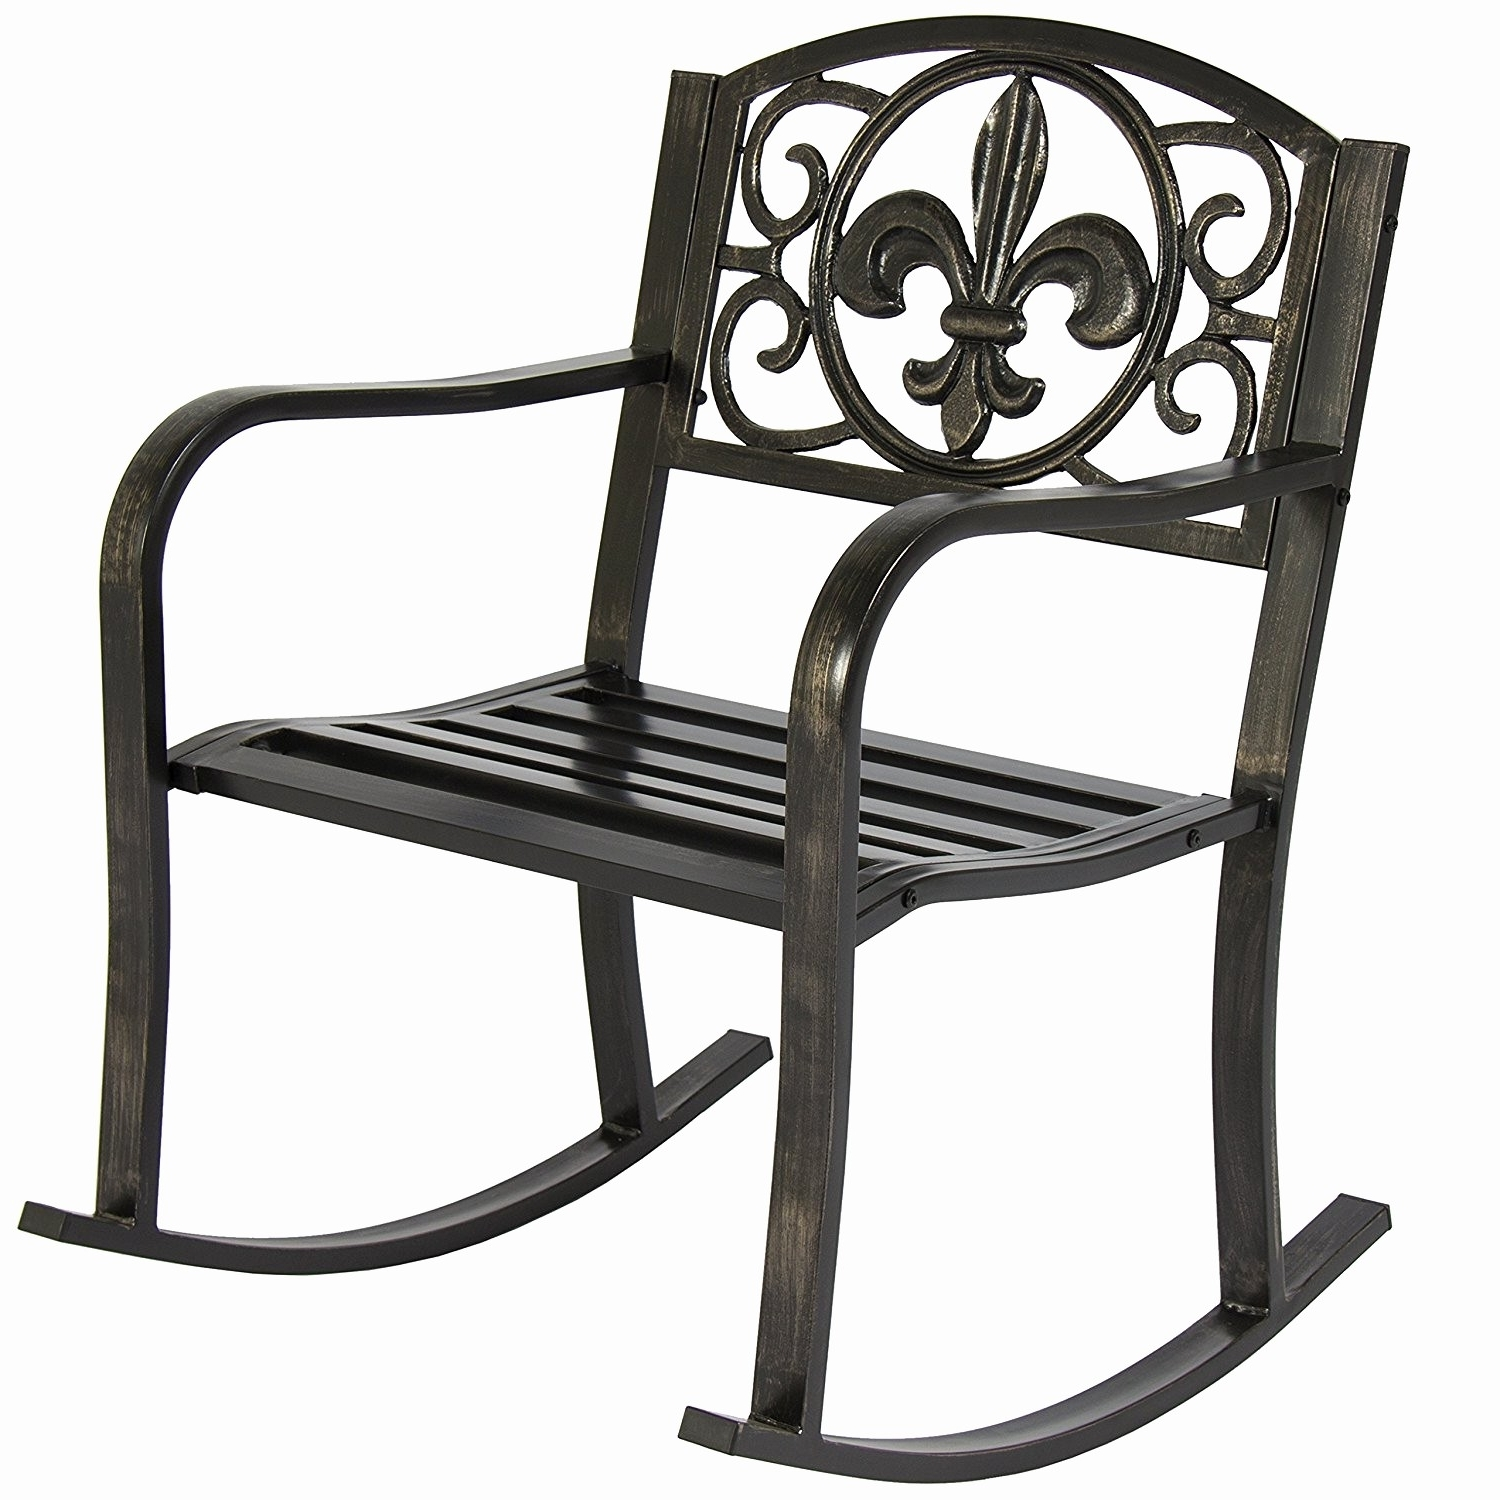 Metal Rocking Patio Chairs New Dining Room Chair Covers Luxury For Best And Newest Patio Rocking Chairs With Covers (View 11 of 15)